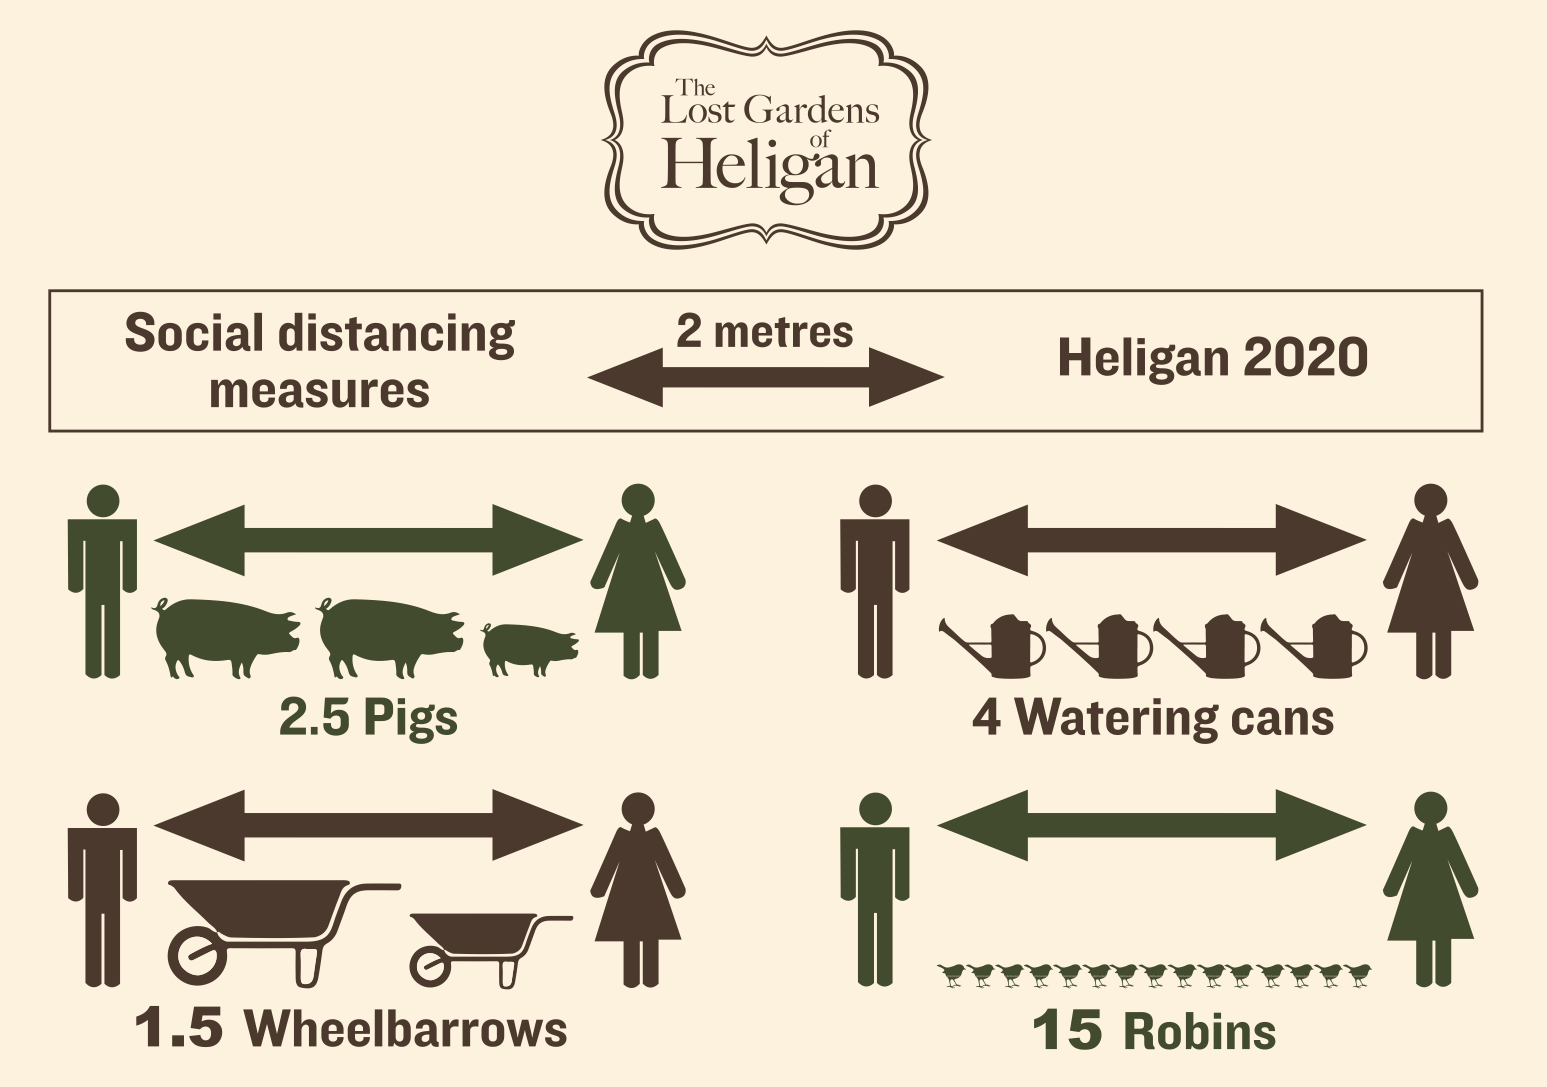 How Lost Gardens of Heligan communicates social distancing completely on brand